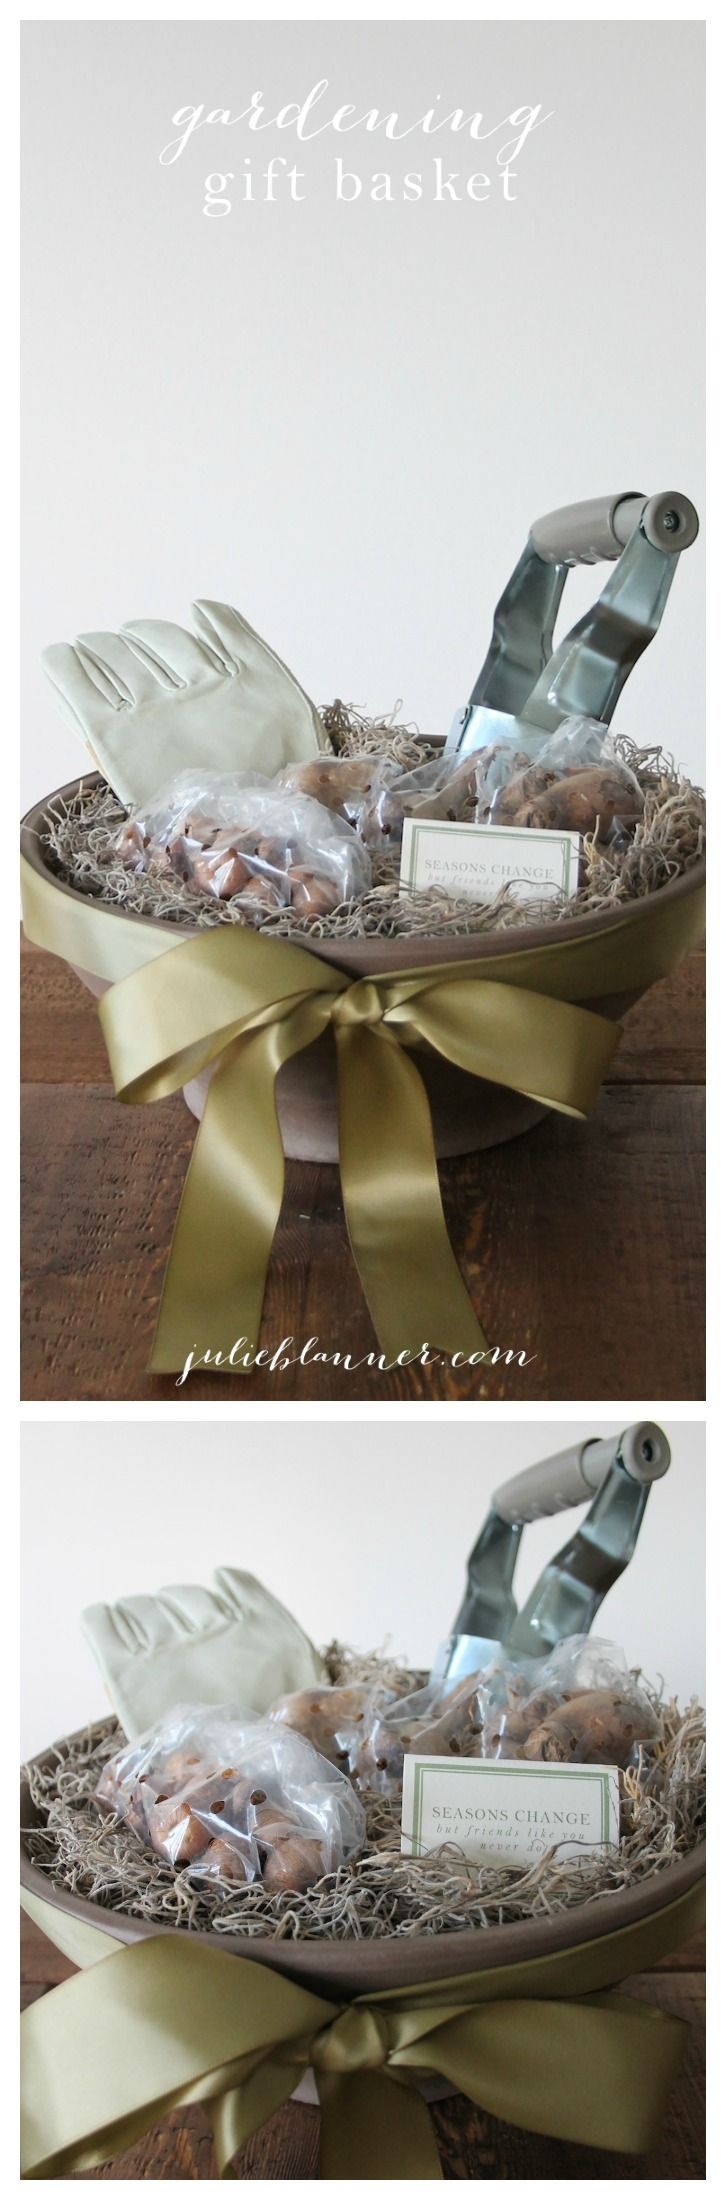 Gift the gift of a blooming spring by preparing a new homeowner or friend this fall with a gardening gift basket